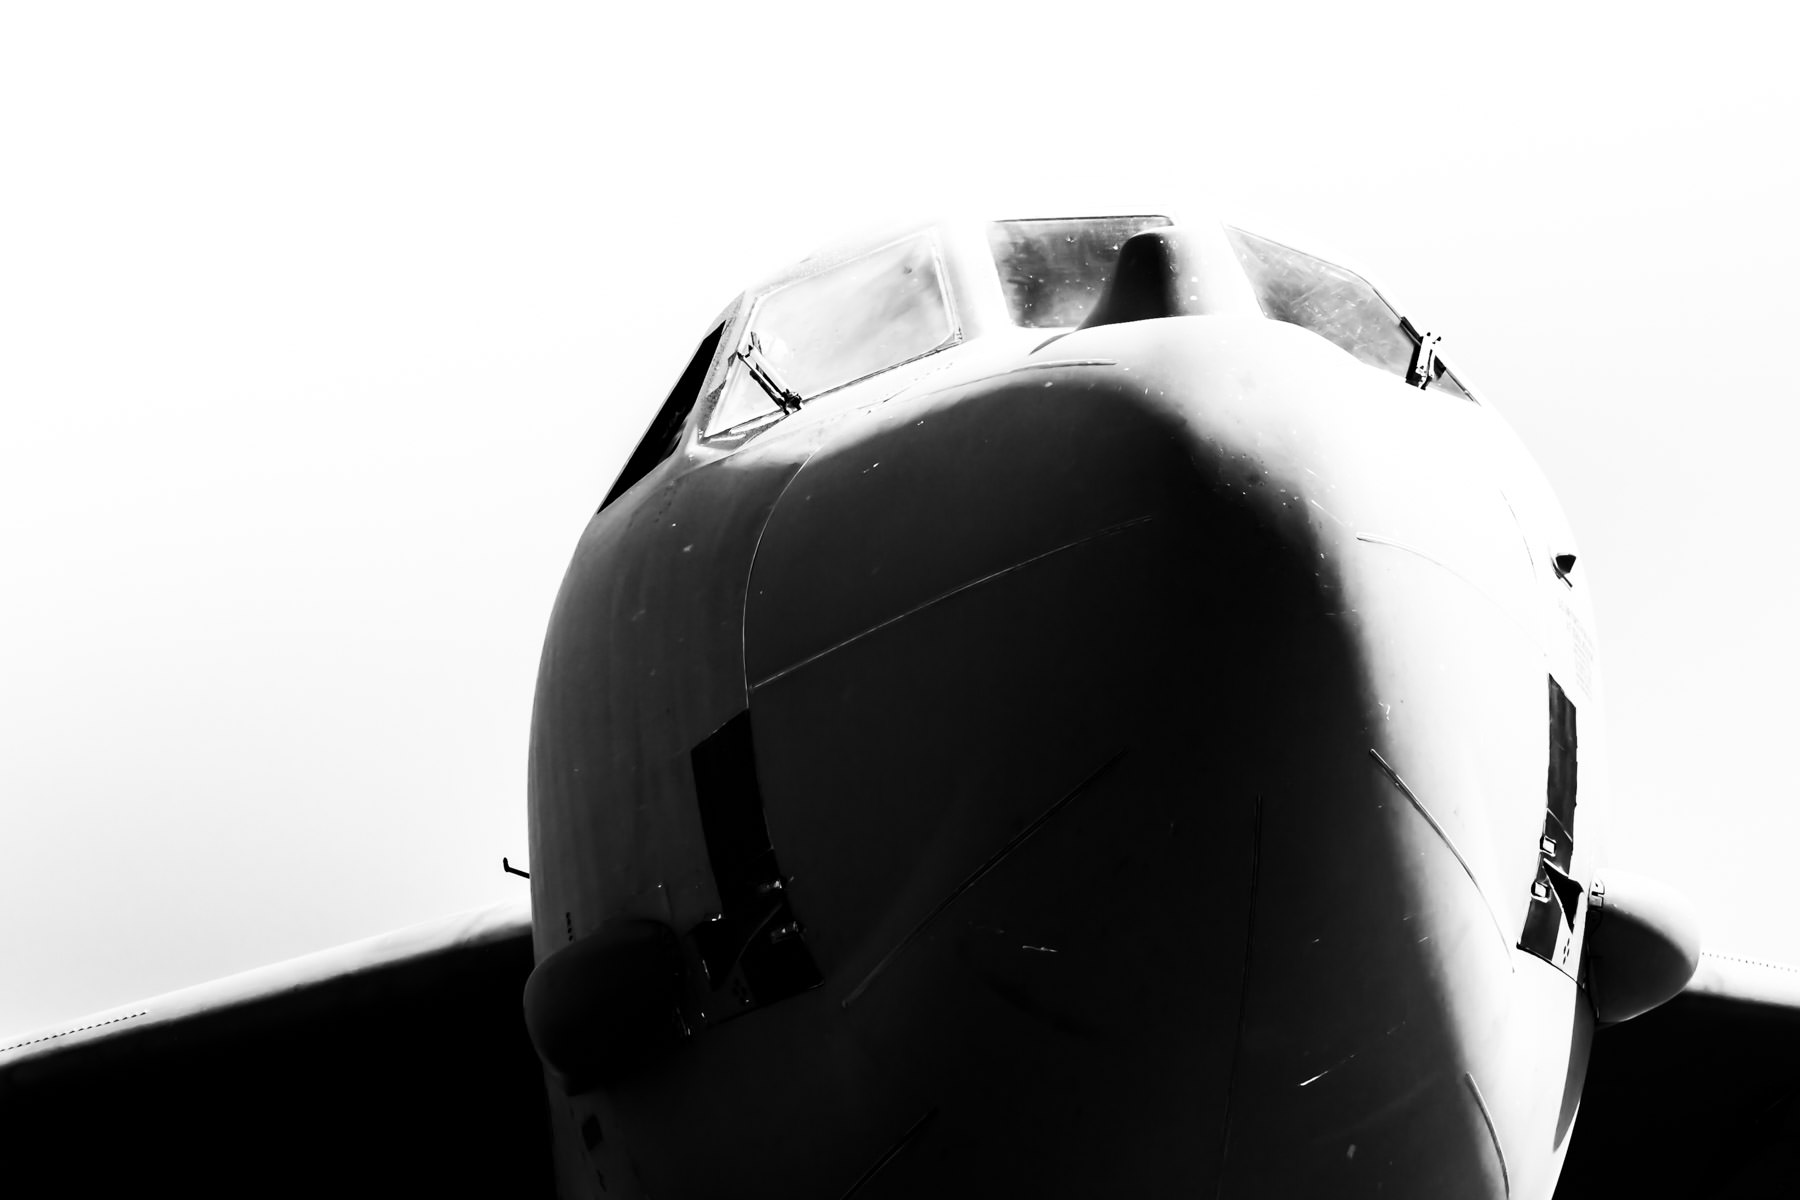 The cockpit of a B-52, spotted at the Fort Worth-Alliance Air Show, Alliance-Fort Worth Airport, Texas.